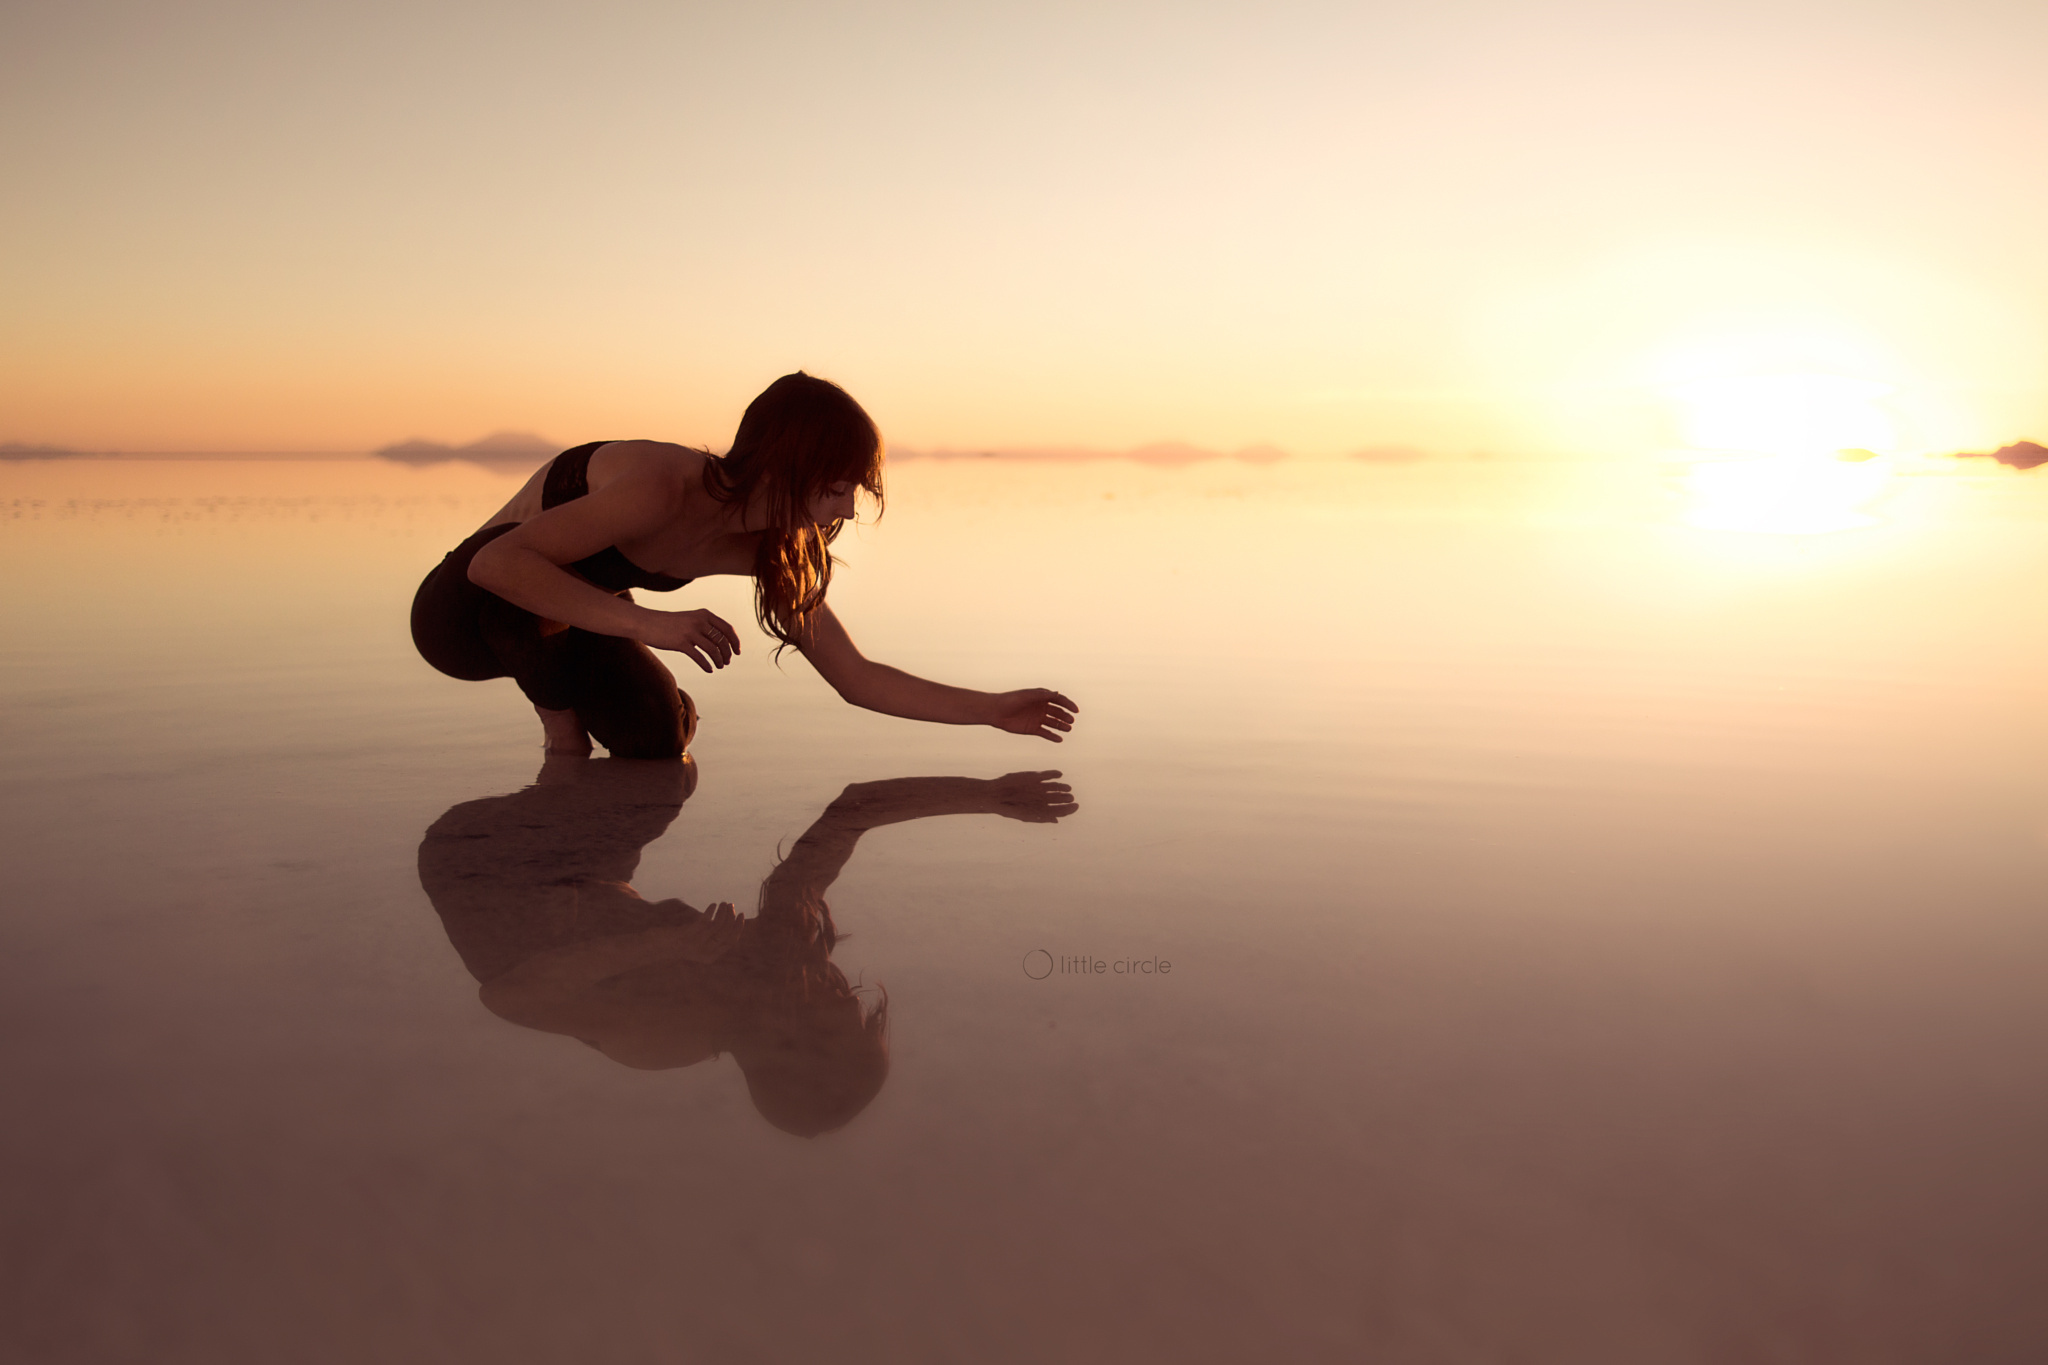 Photographing in the Largest Salt Desert on the Planet